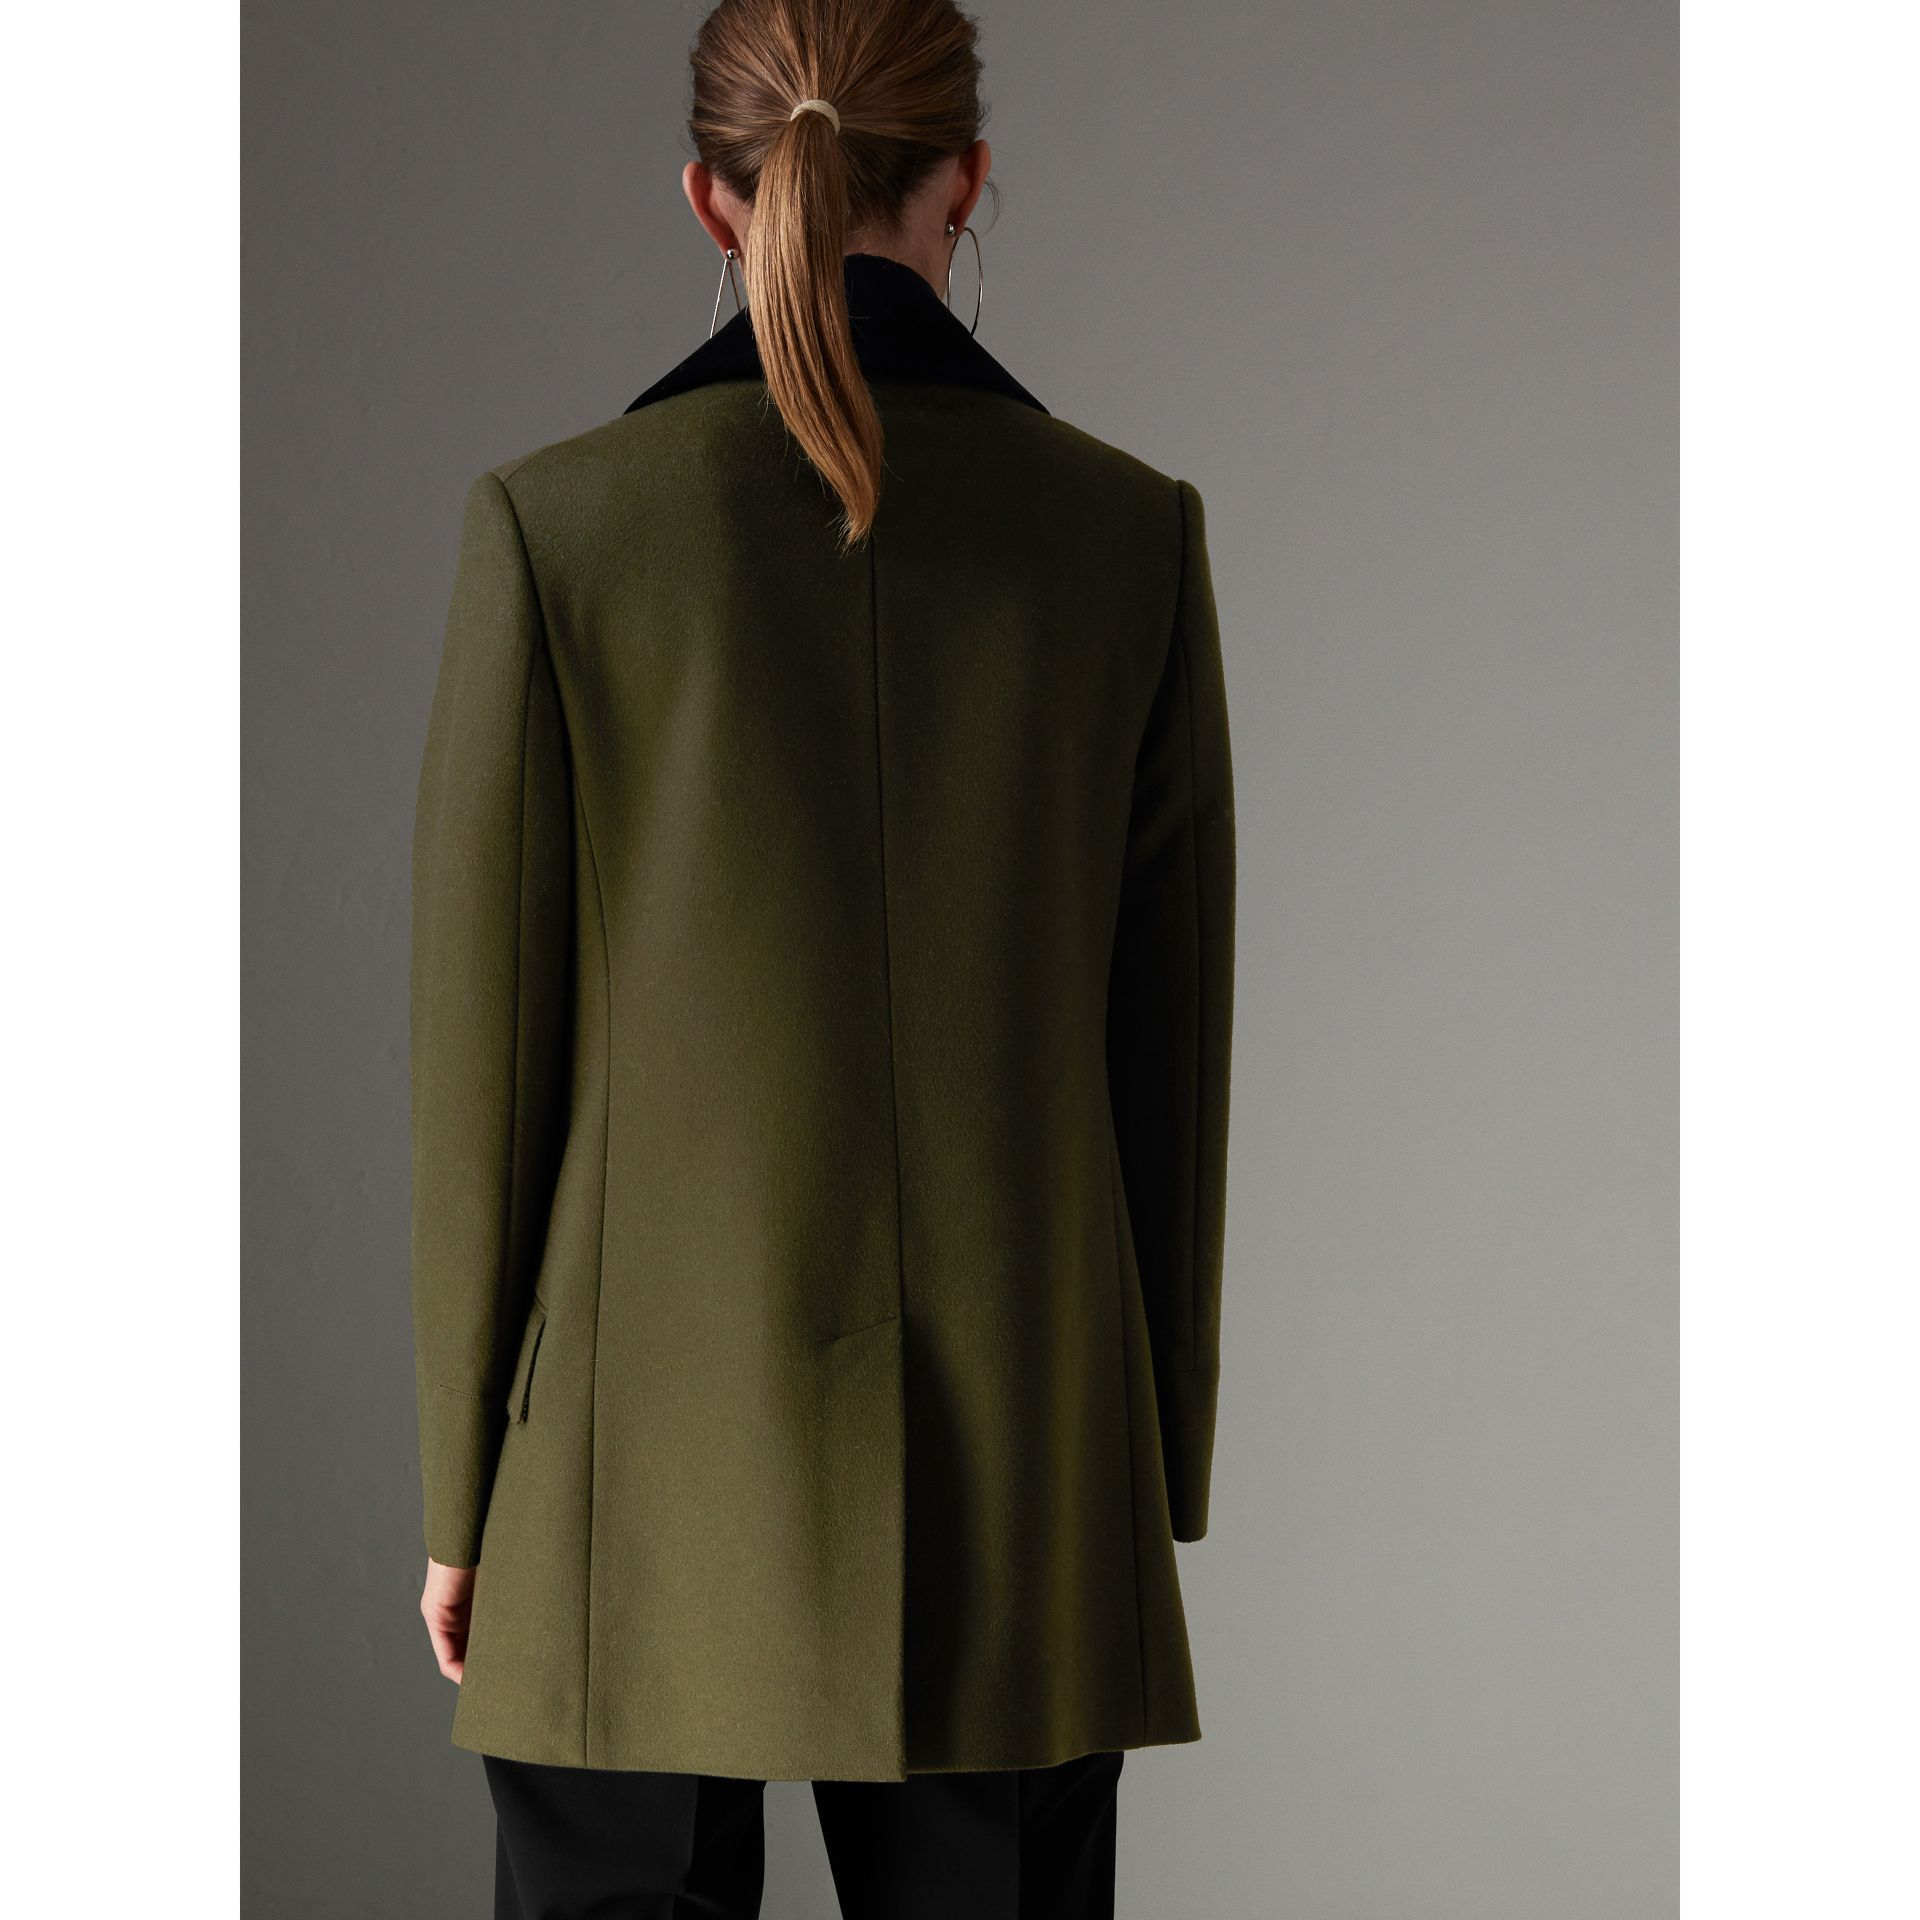 Velvet Collar Wool Military Coat in Olive - Women | Burberry - gallery image 2